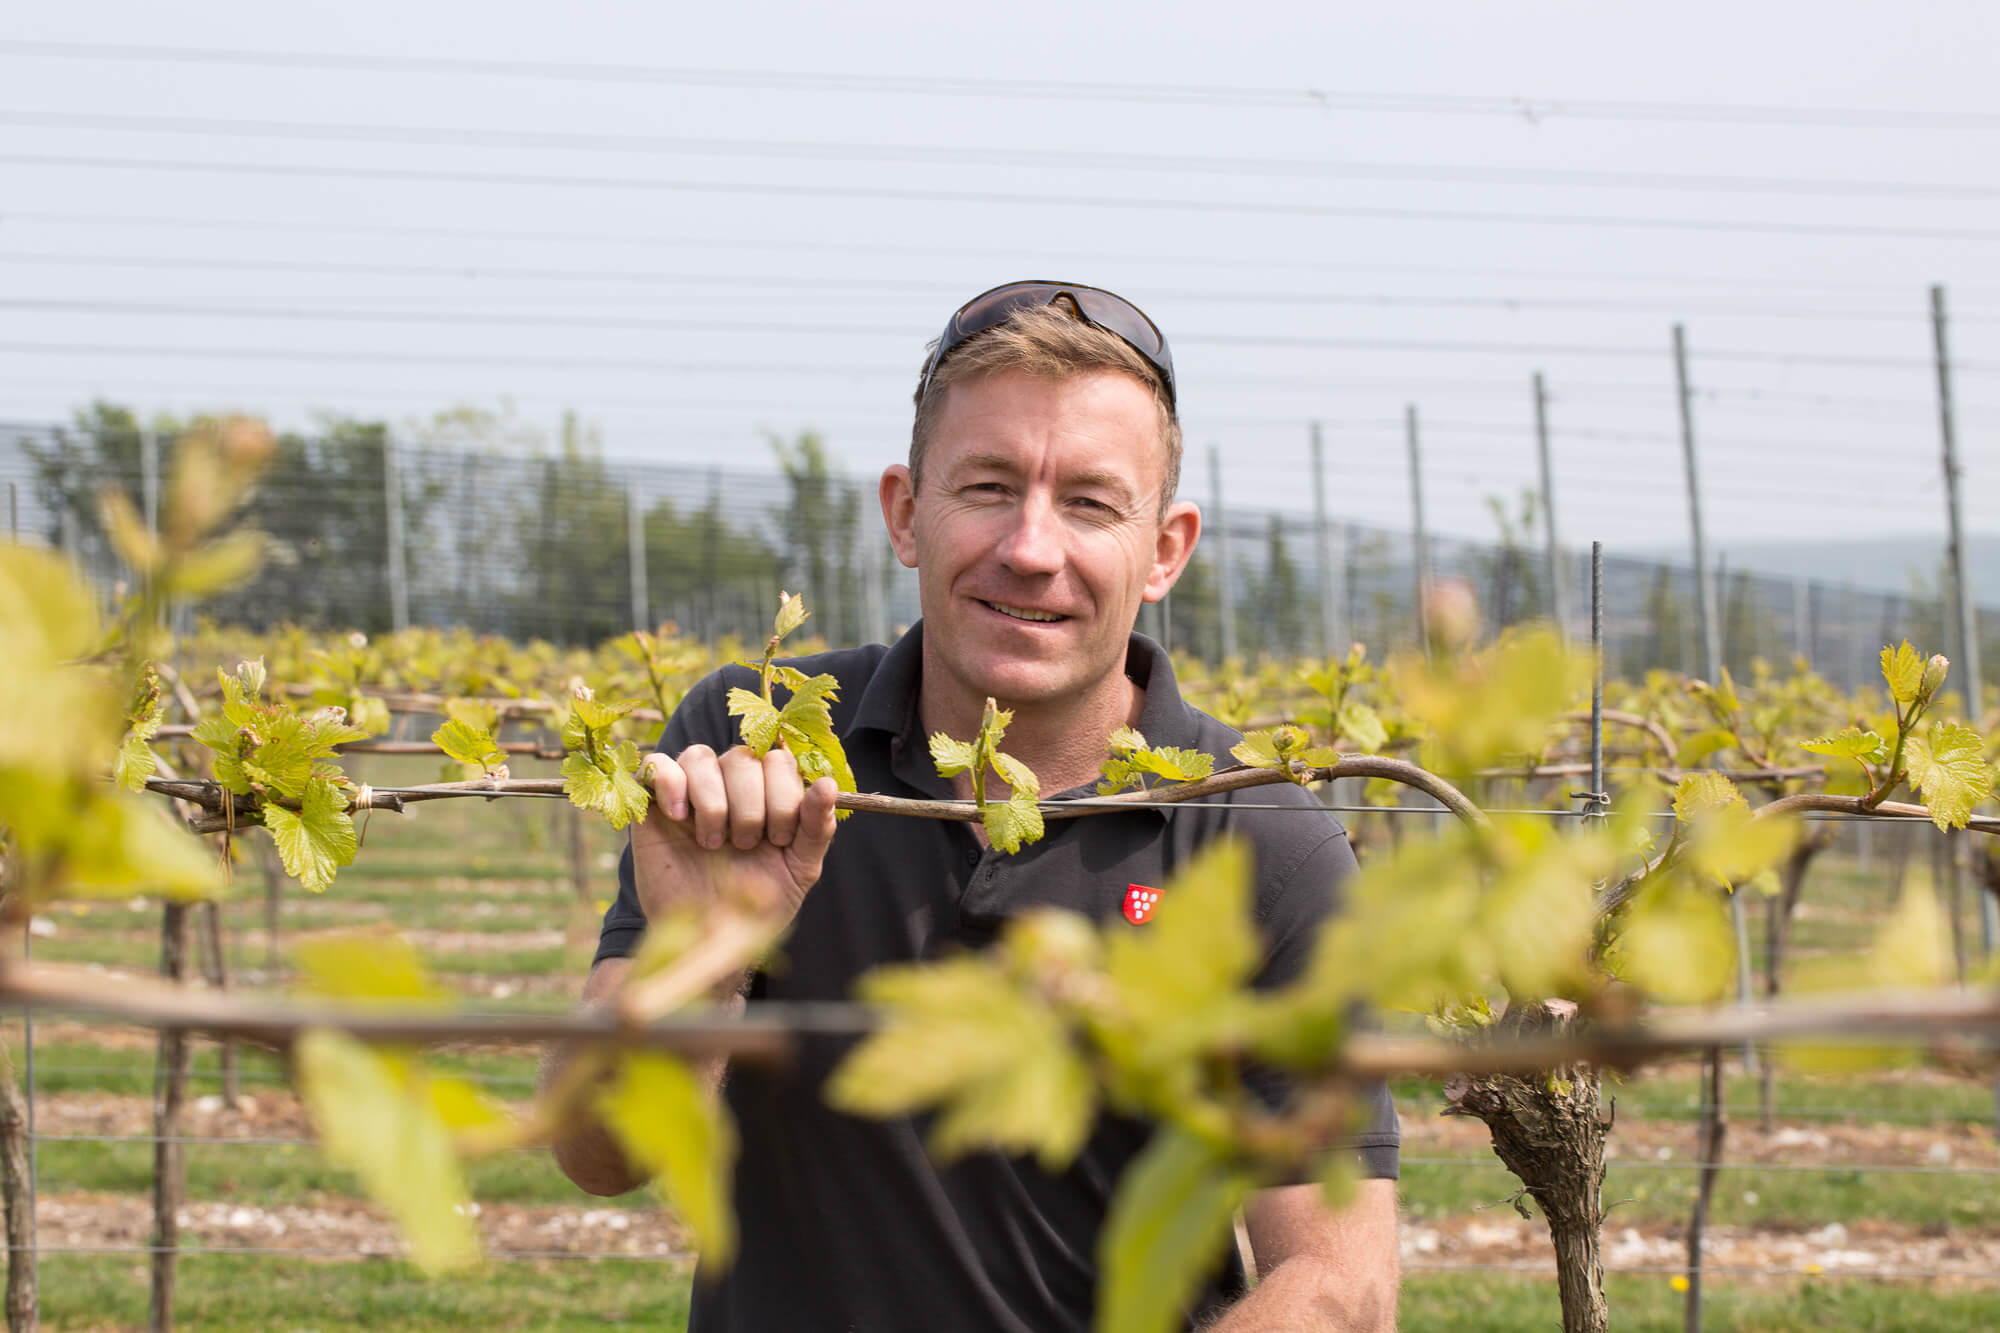 Vineyard Manager Kneeling by a vine bursting with new buds